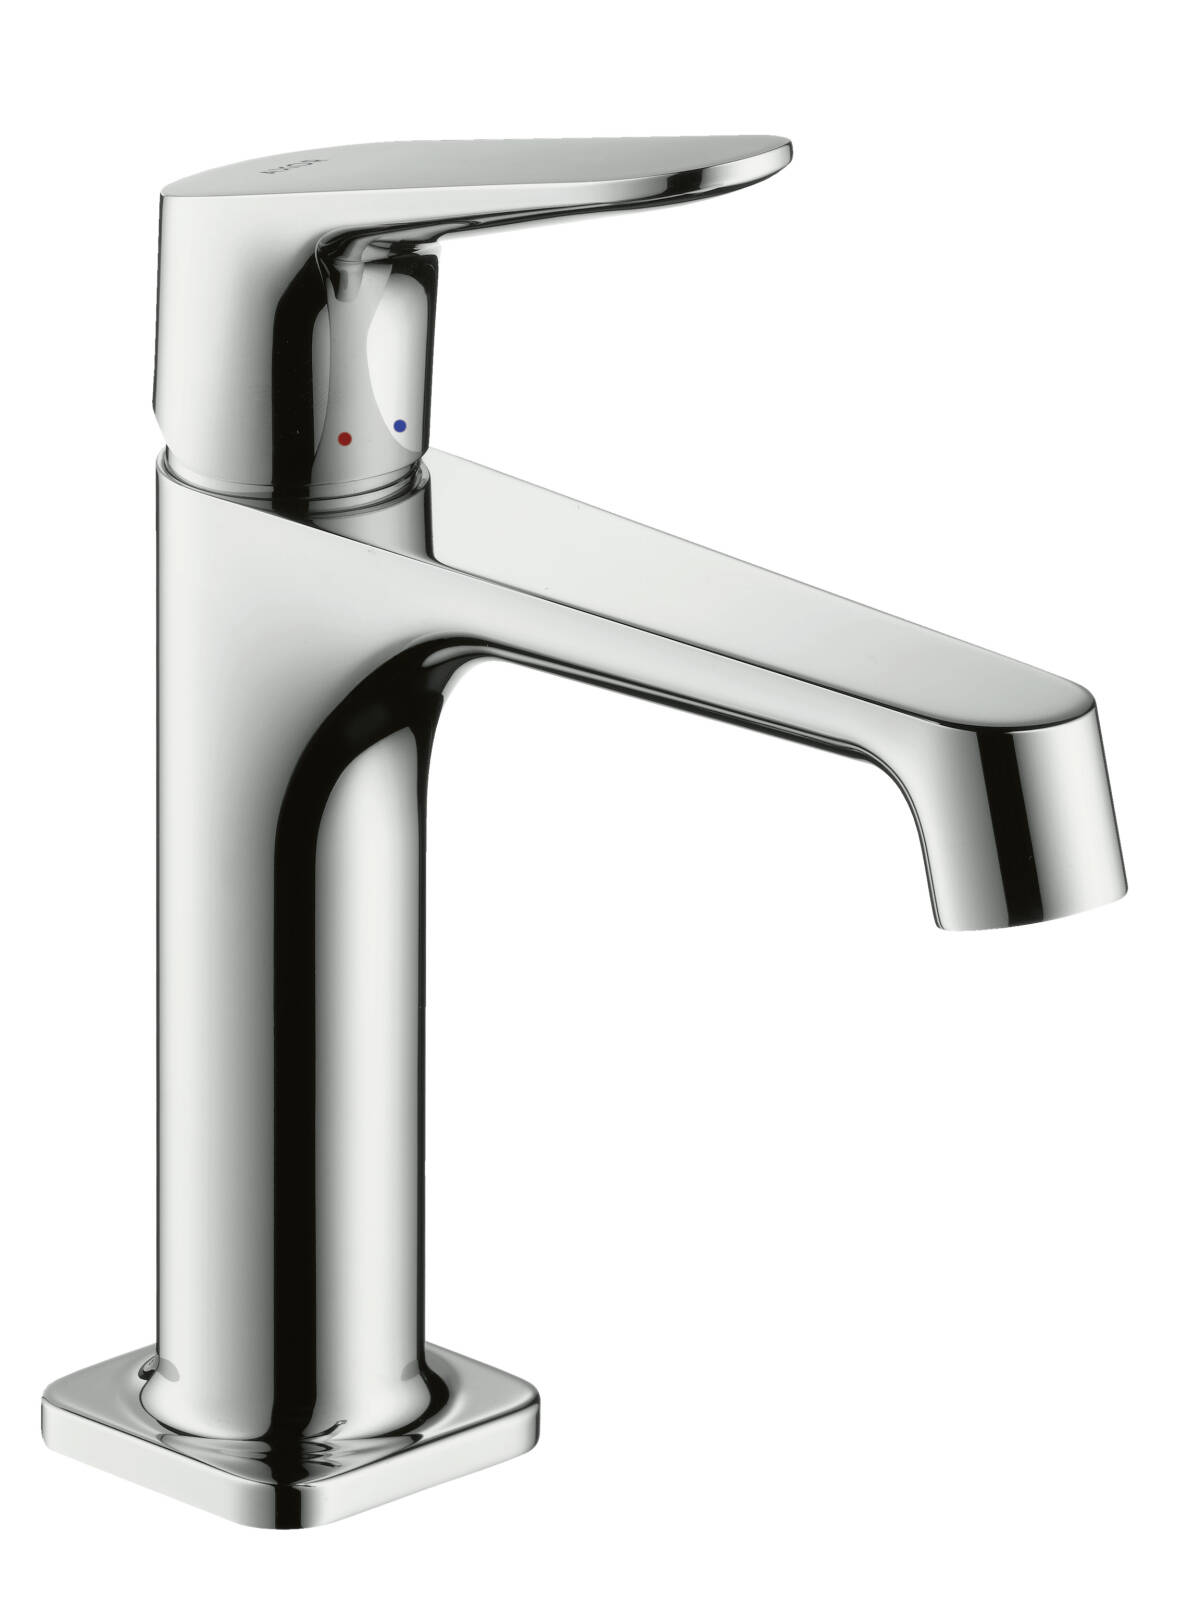 montreux reviews axor faucet hansgrohe com faucets kitchen vernon manor bridge